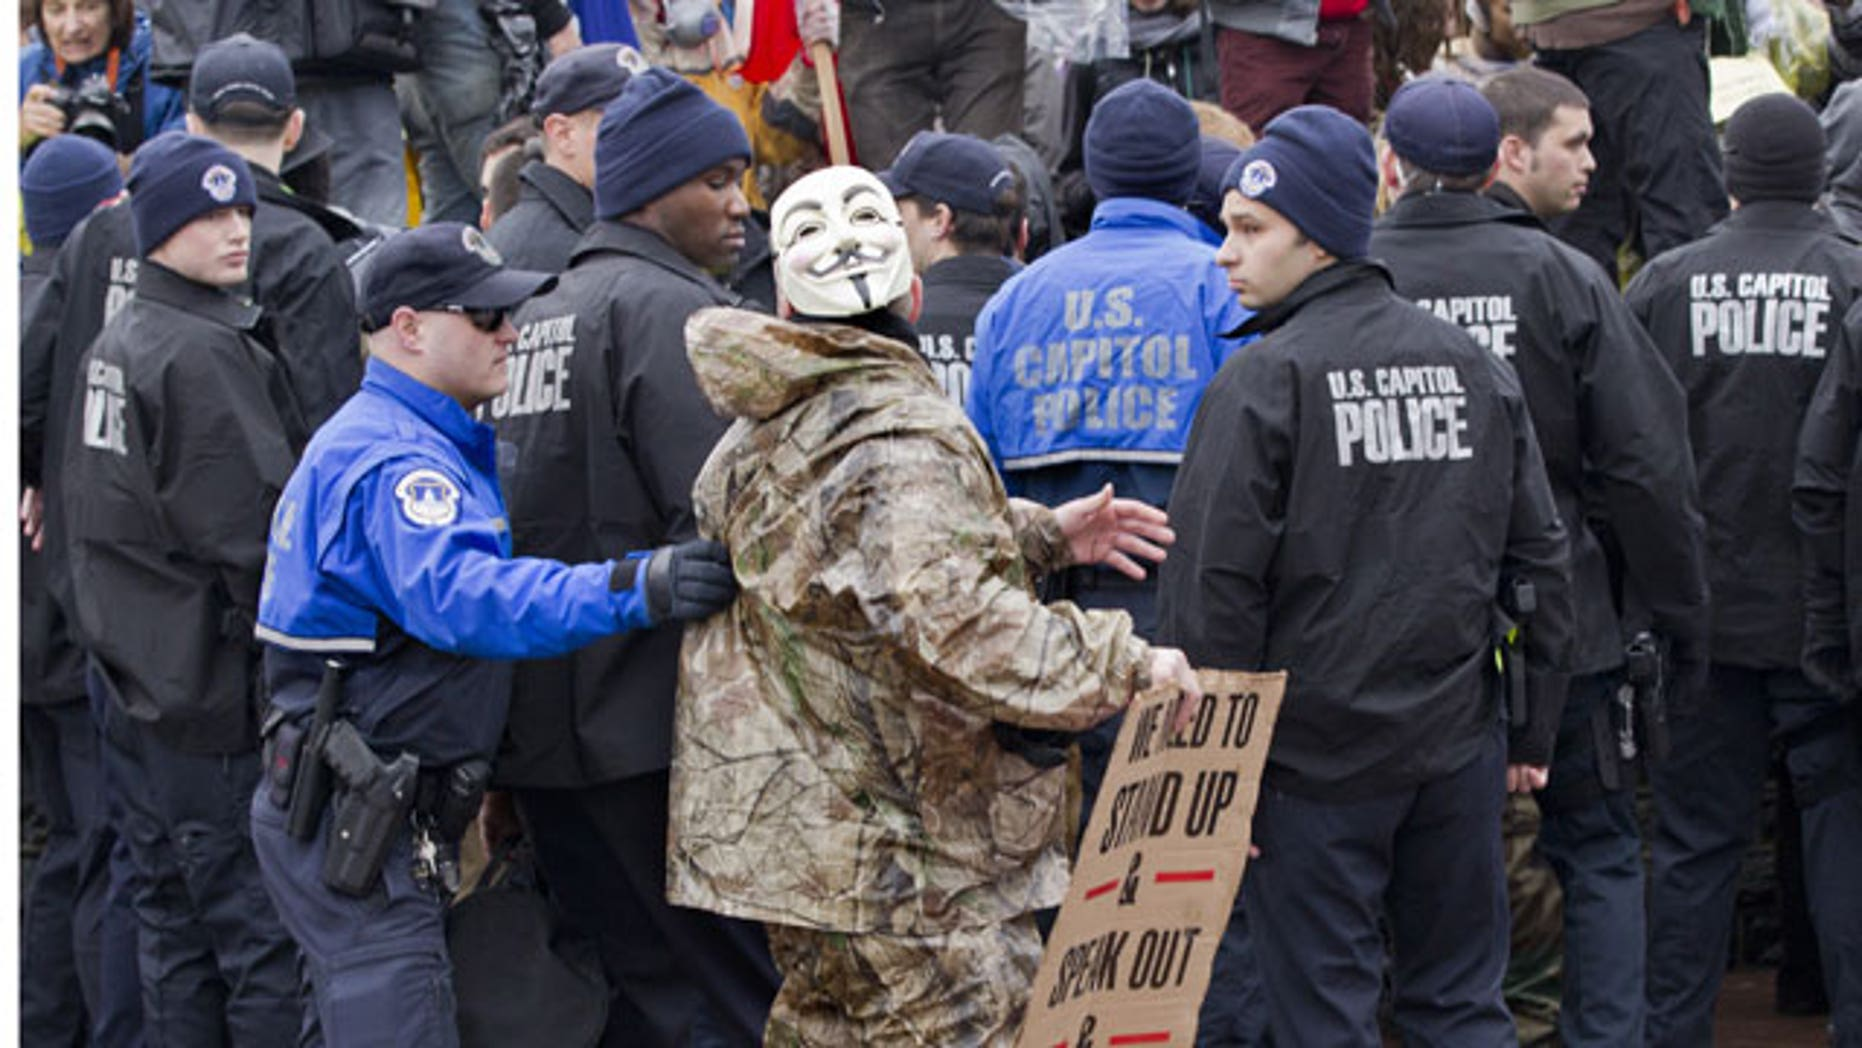 January 17, 2012: As Congress returns from its winter recess, protesters aligned with the Occupy Wall Street movement demonstrate on Capitol Hill in Washington to decry the influence of corporate money in politics.